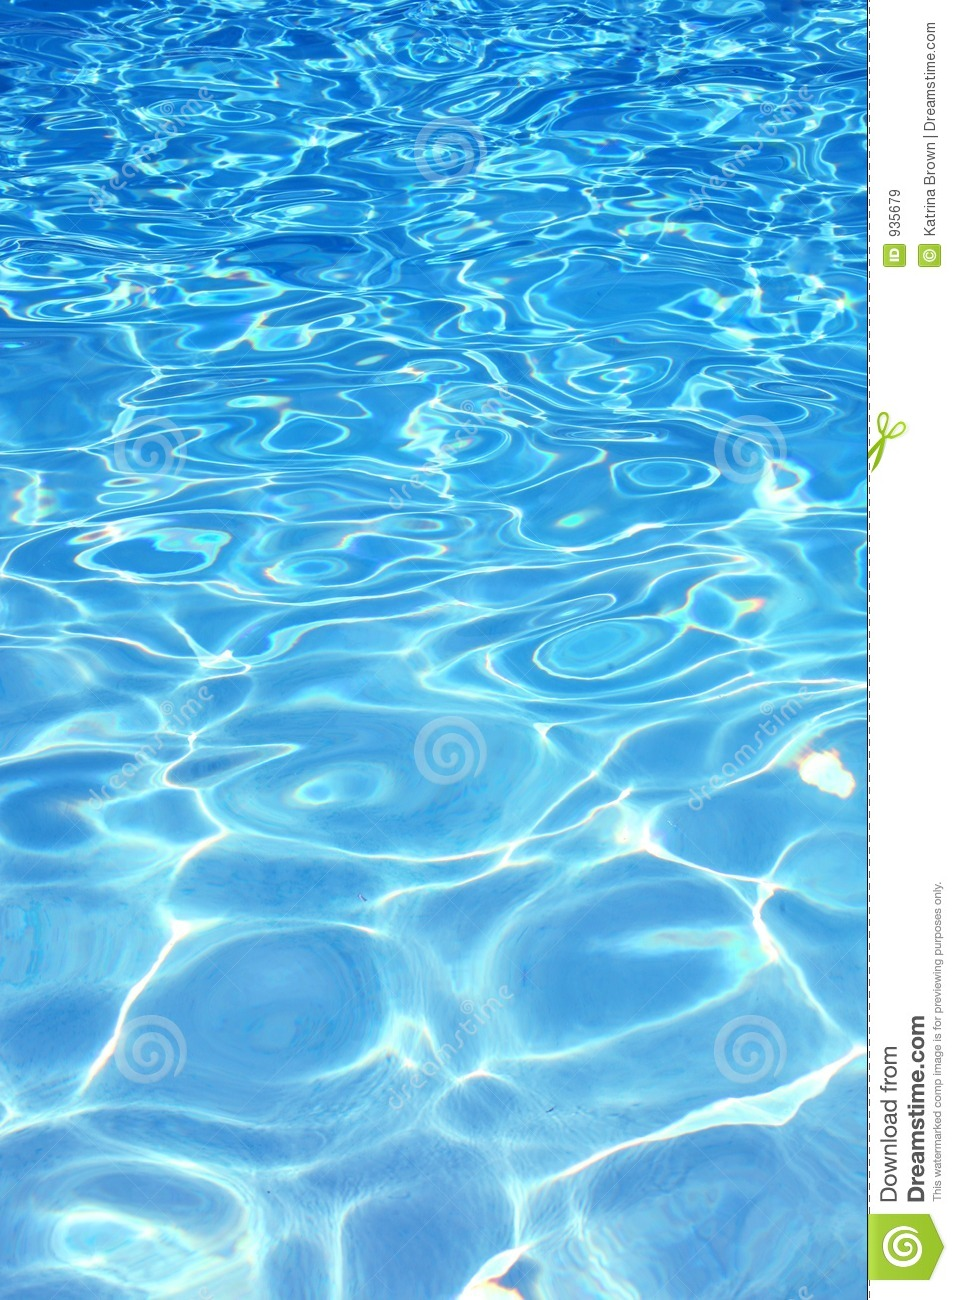 Blue pool water background stock image image of pattern for Blue water parts piscine